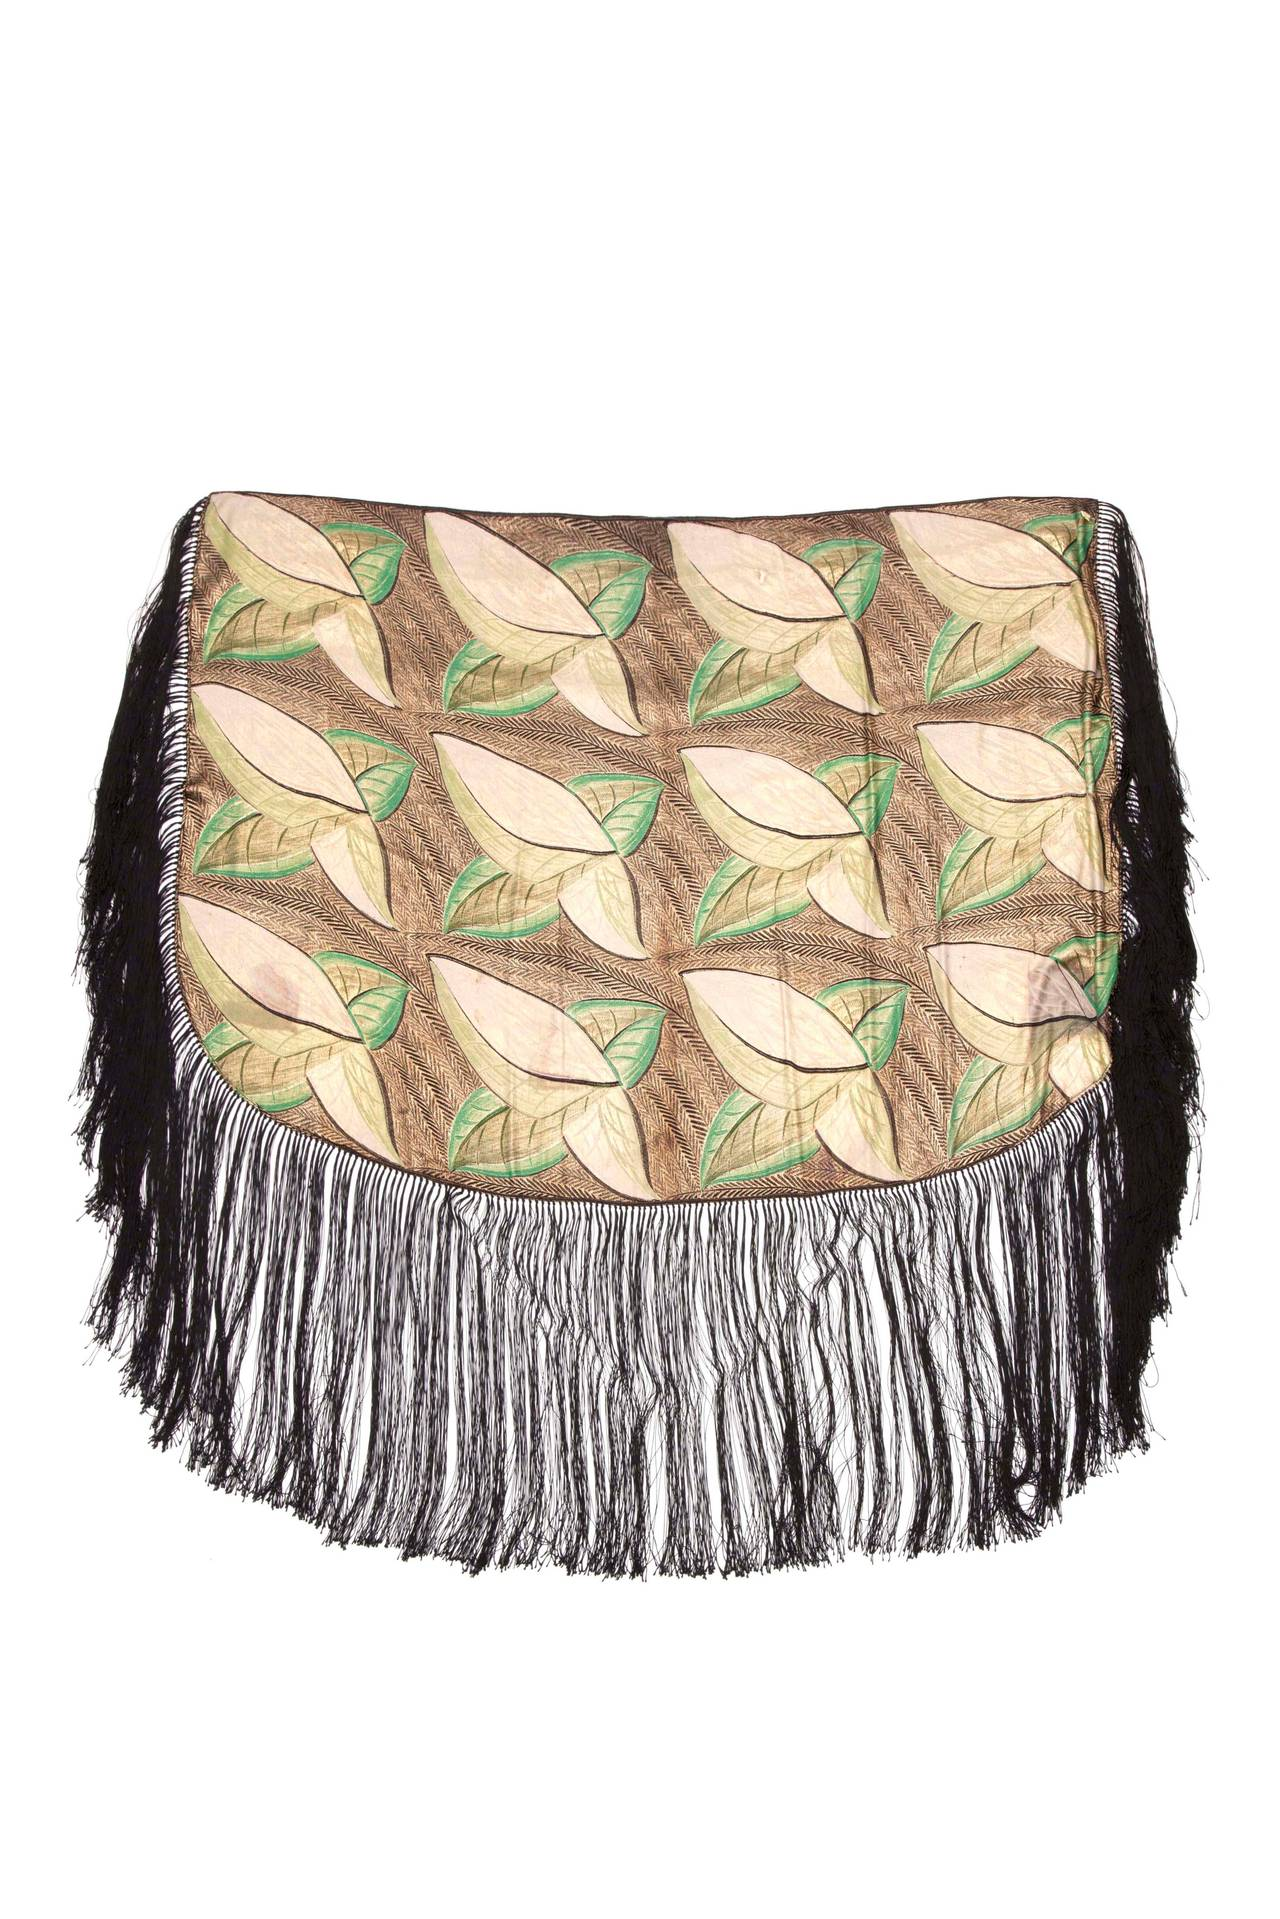 1920s/1930s Lame Scarf with Leaf Motif and Tassels 3